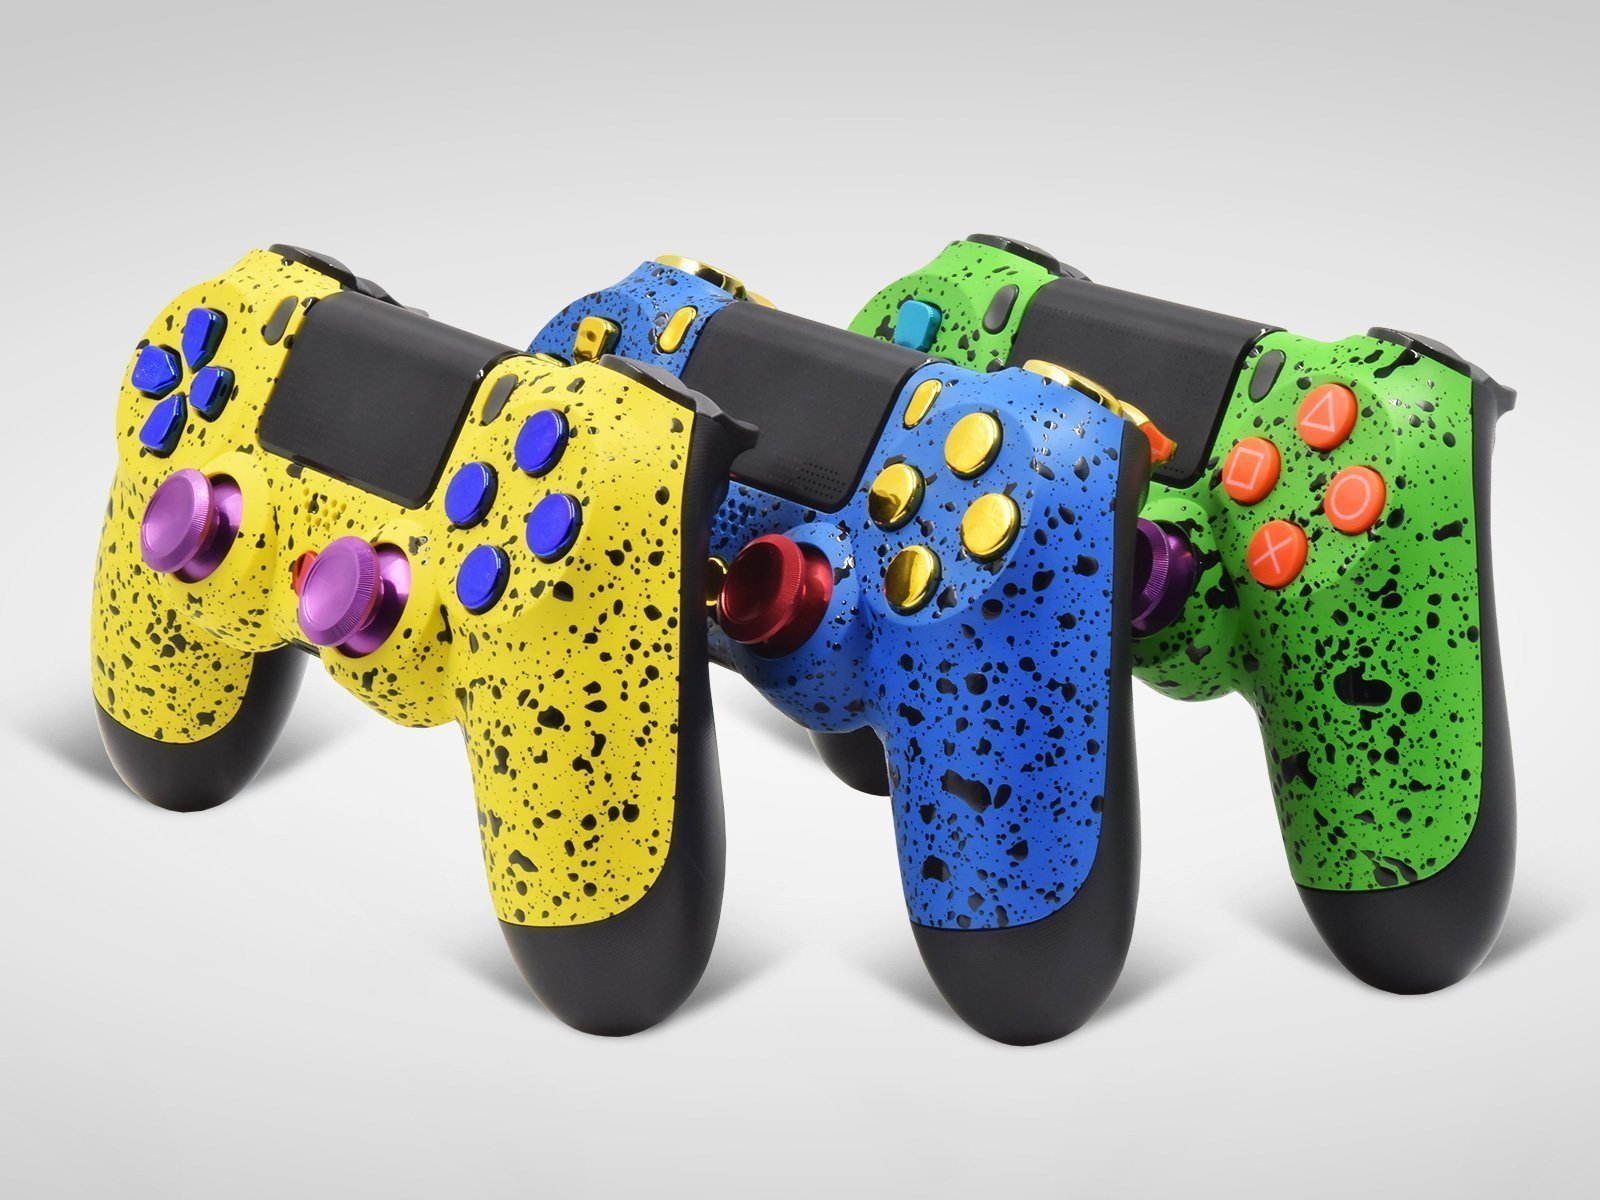 PS4 Custom Controllers - New Limited Edition Designs, Prices